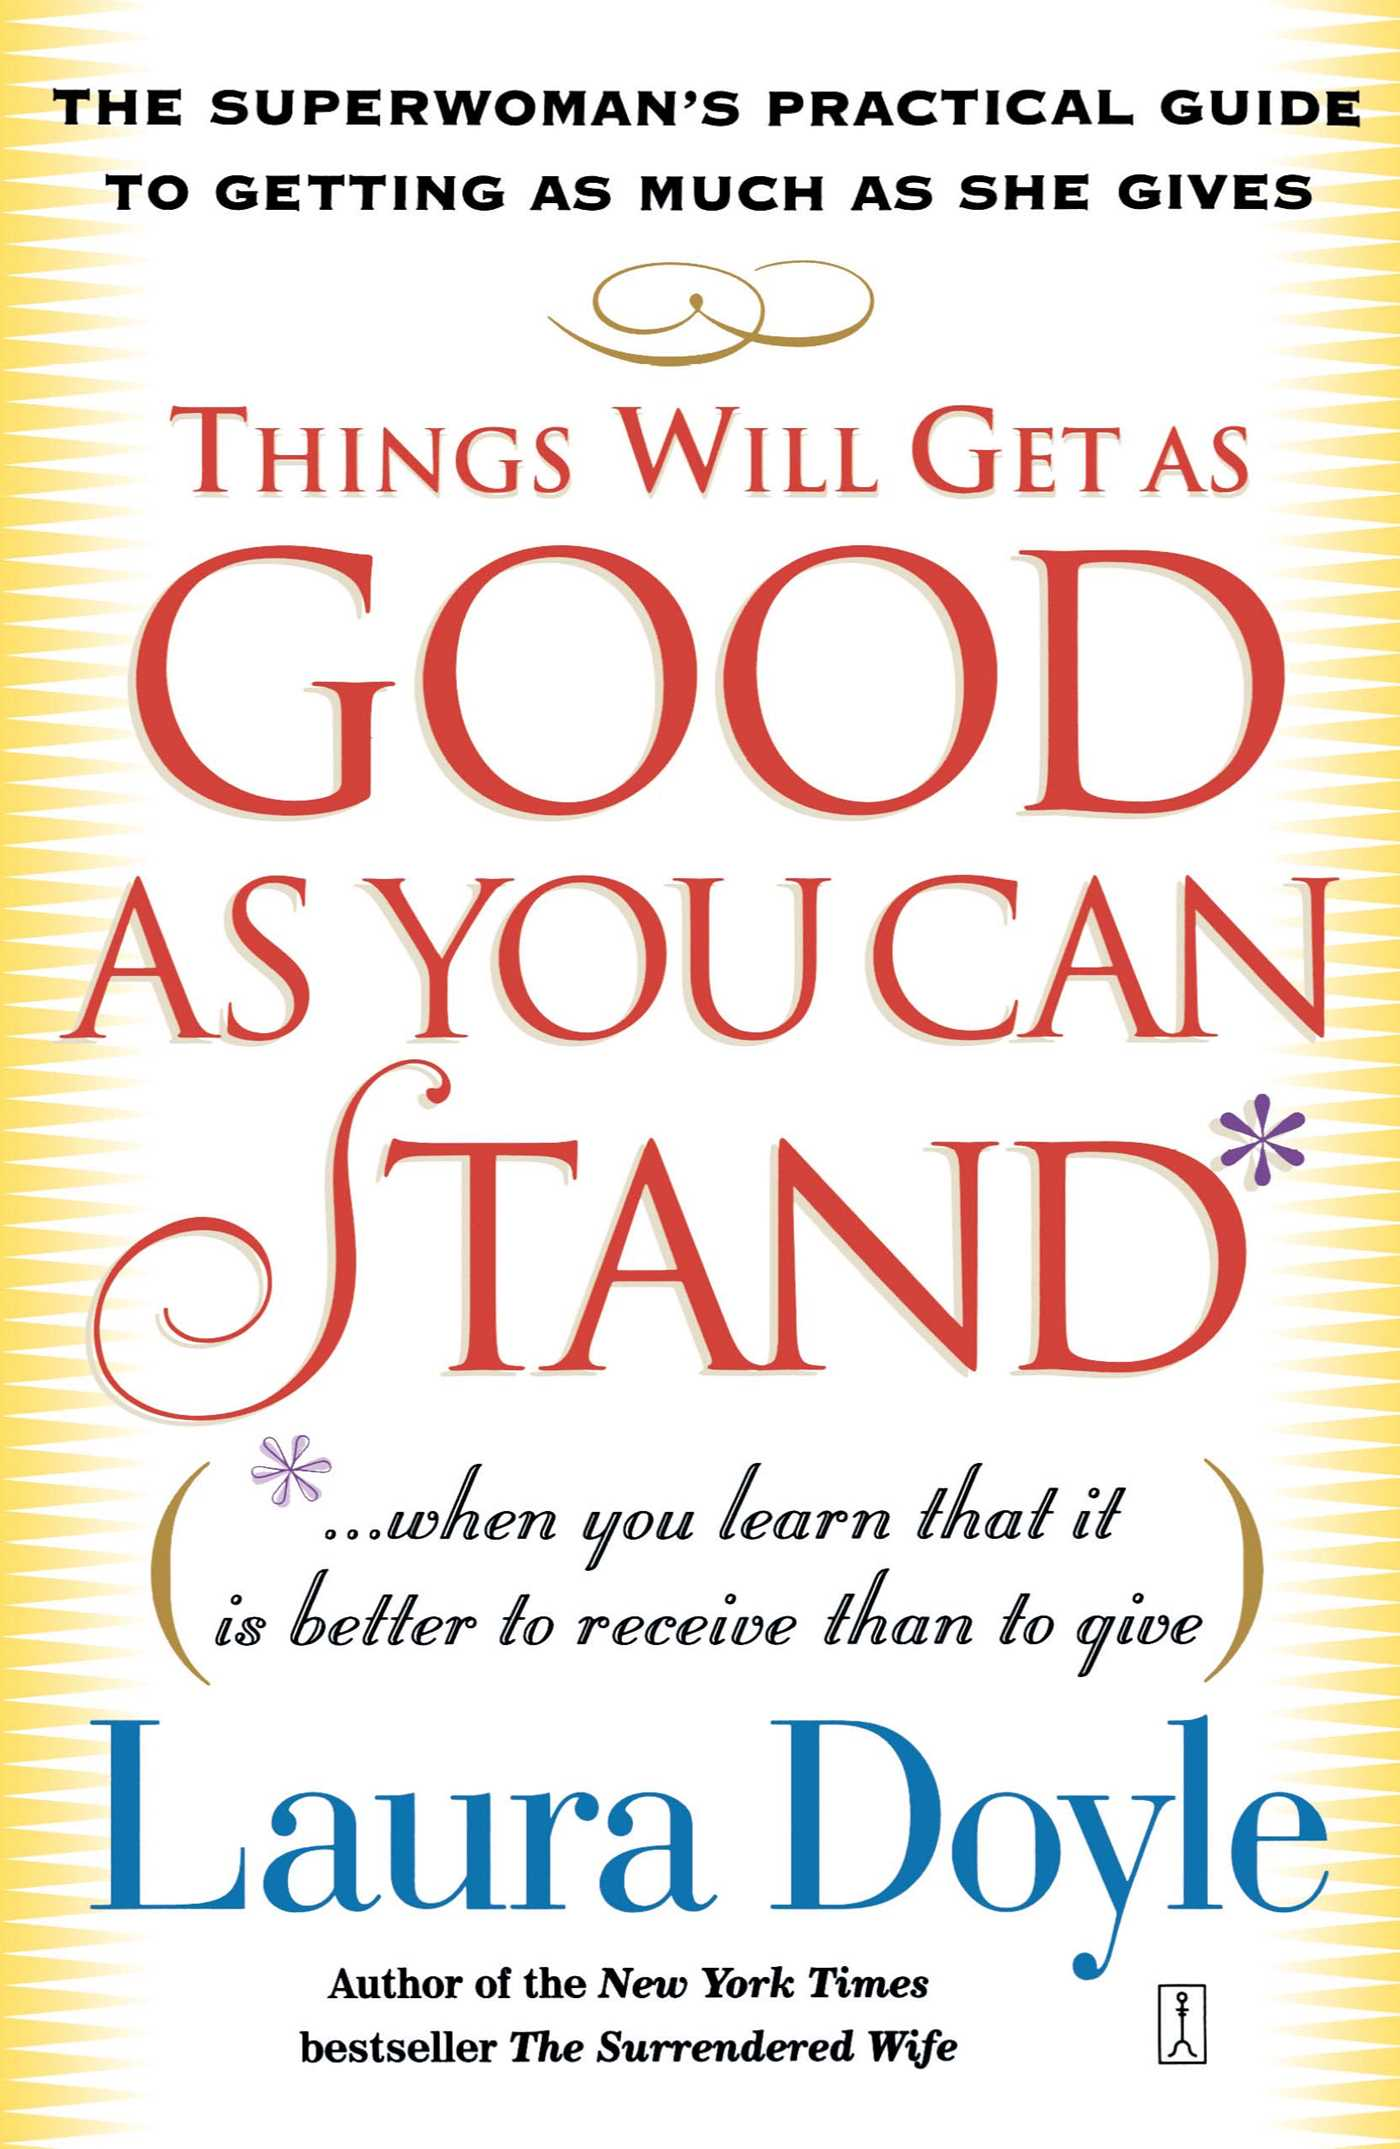 Things-will-get-as-good-as-you-can-stand-9780743245159_hr